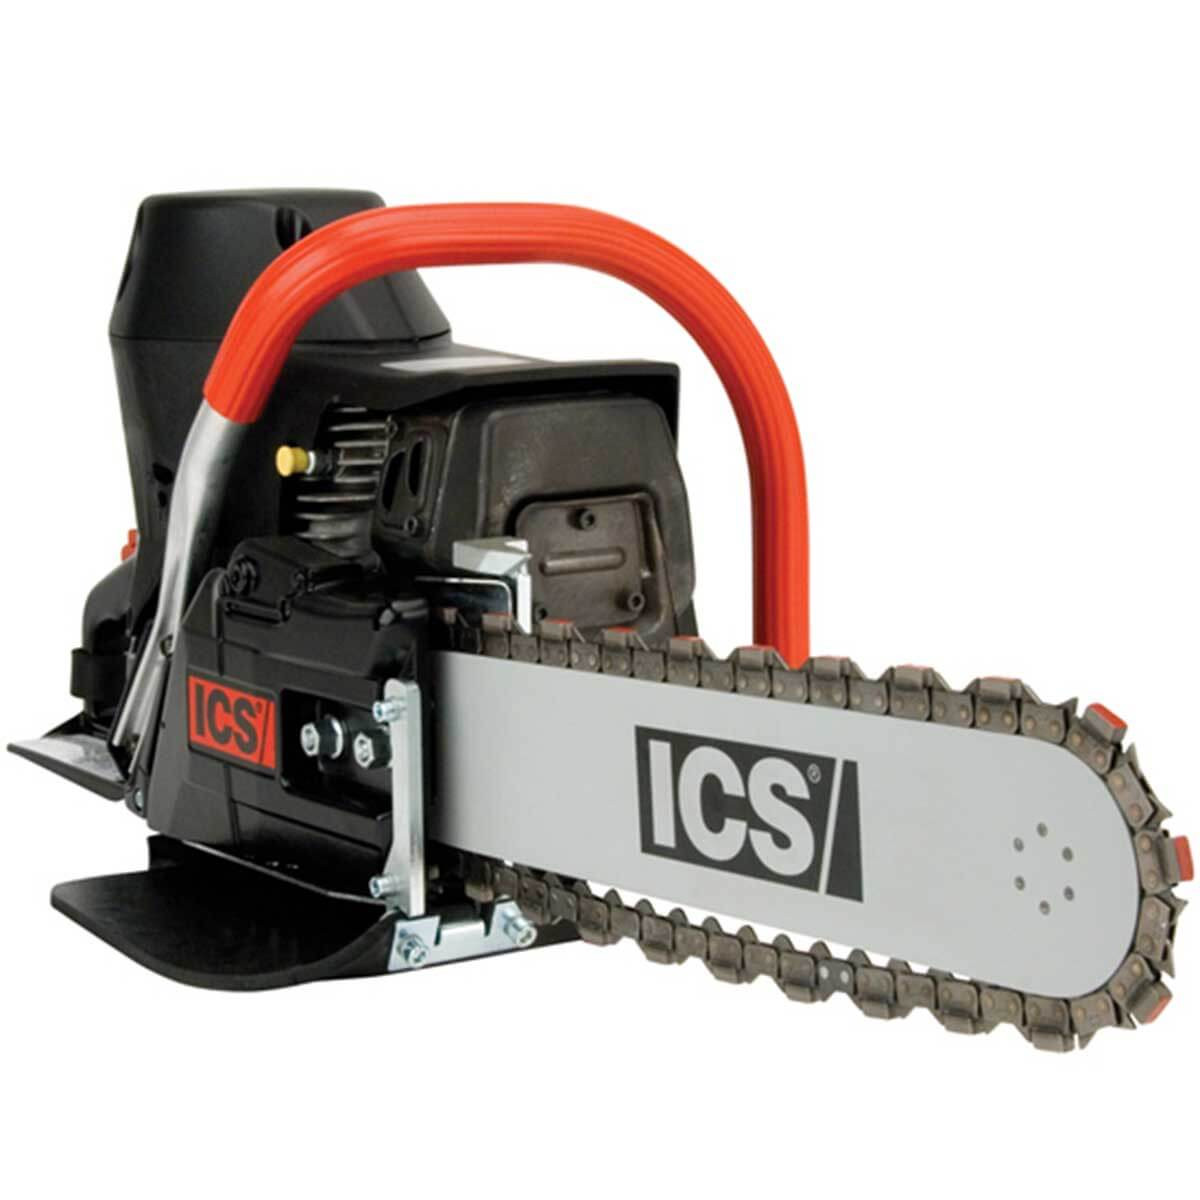 ICS 680ES Concrete Chain Saw